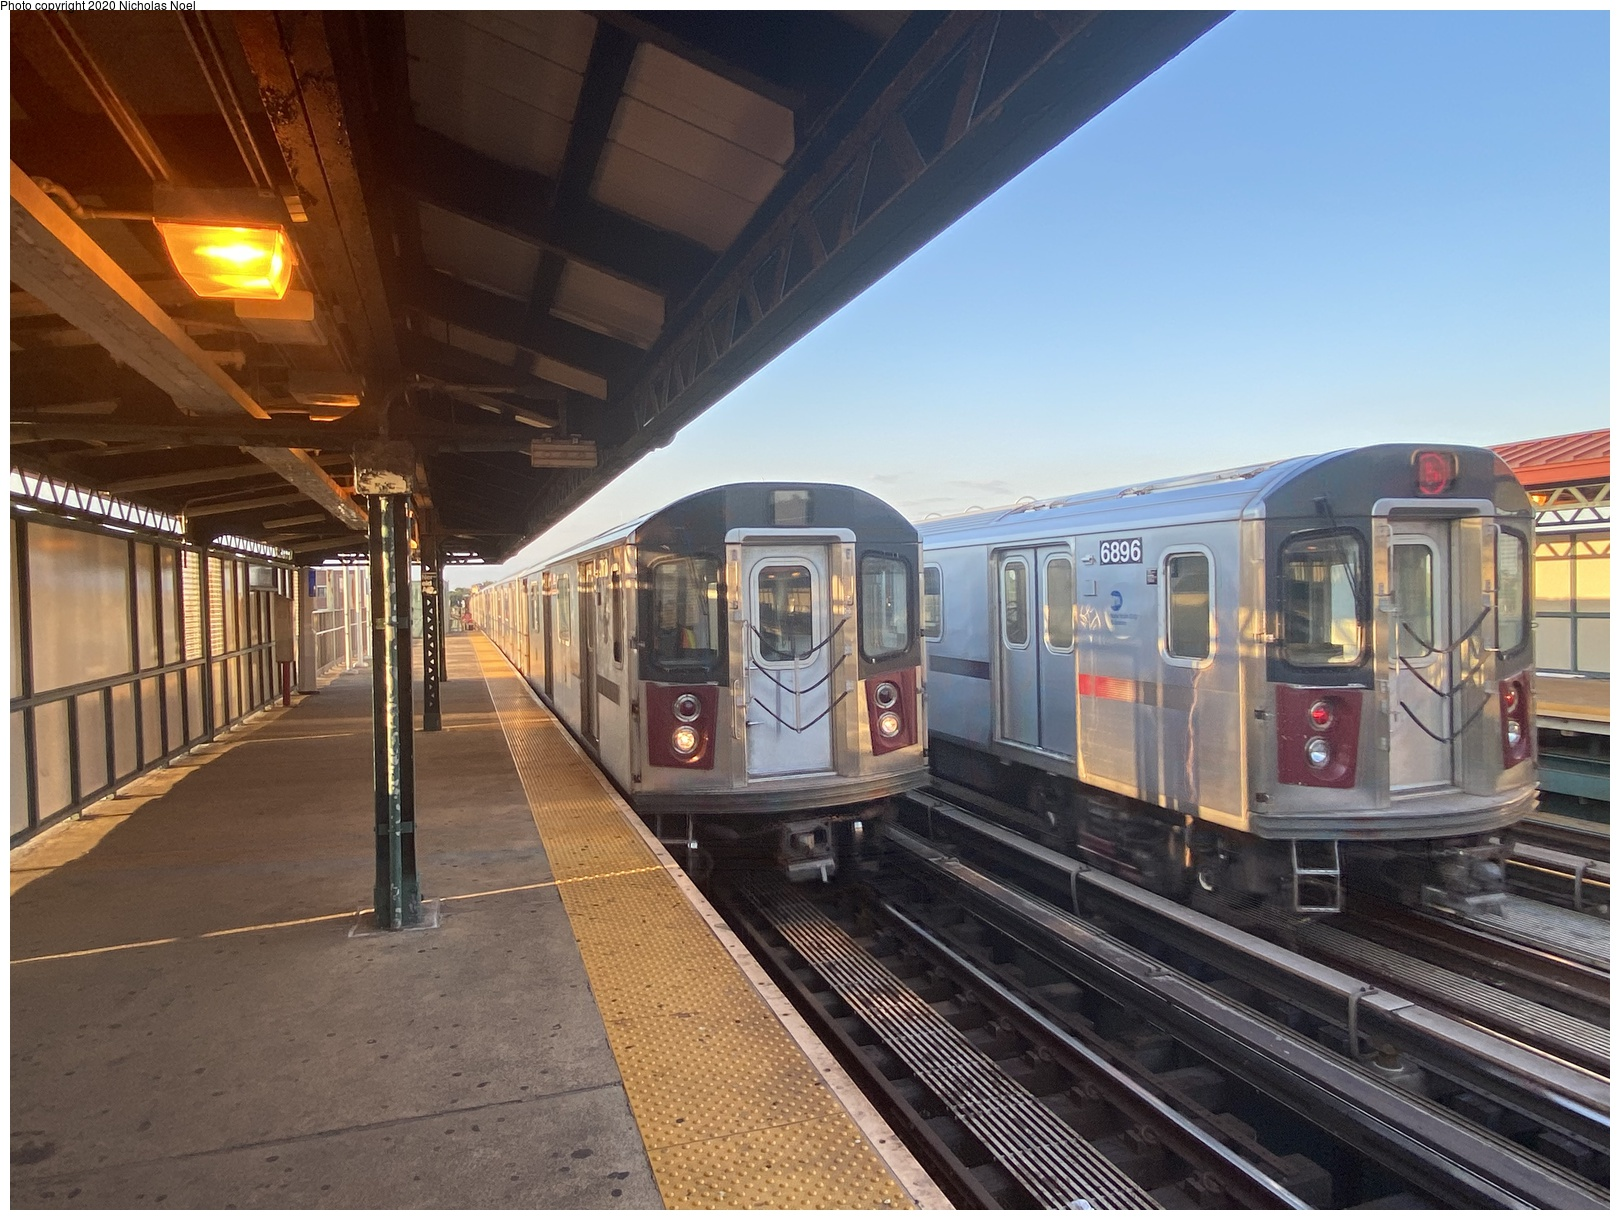 (357k, 1044x787)<br><b>Country:</b> United States<br><b>City:</b> New York<br><b>System:</b> New York City Transit<br><b>Line:</b> BMT Myrtle Avenue Line<br><b>Location:</b> Metropolitan Avenue <br><b>Car:</b> BMT Elevated Gate Car  <br><b>Photo by:</b> Joel Shanus<br><b>Viewed (this week/total):</b> 0 / 1151